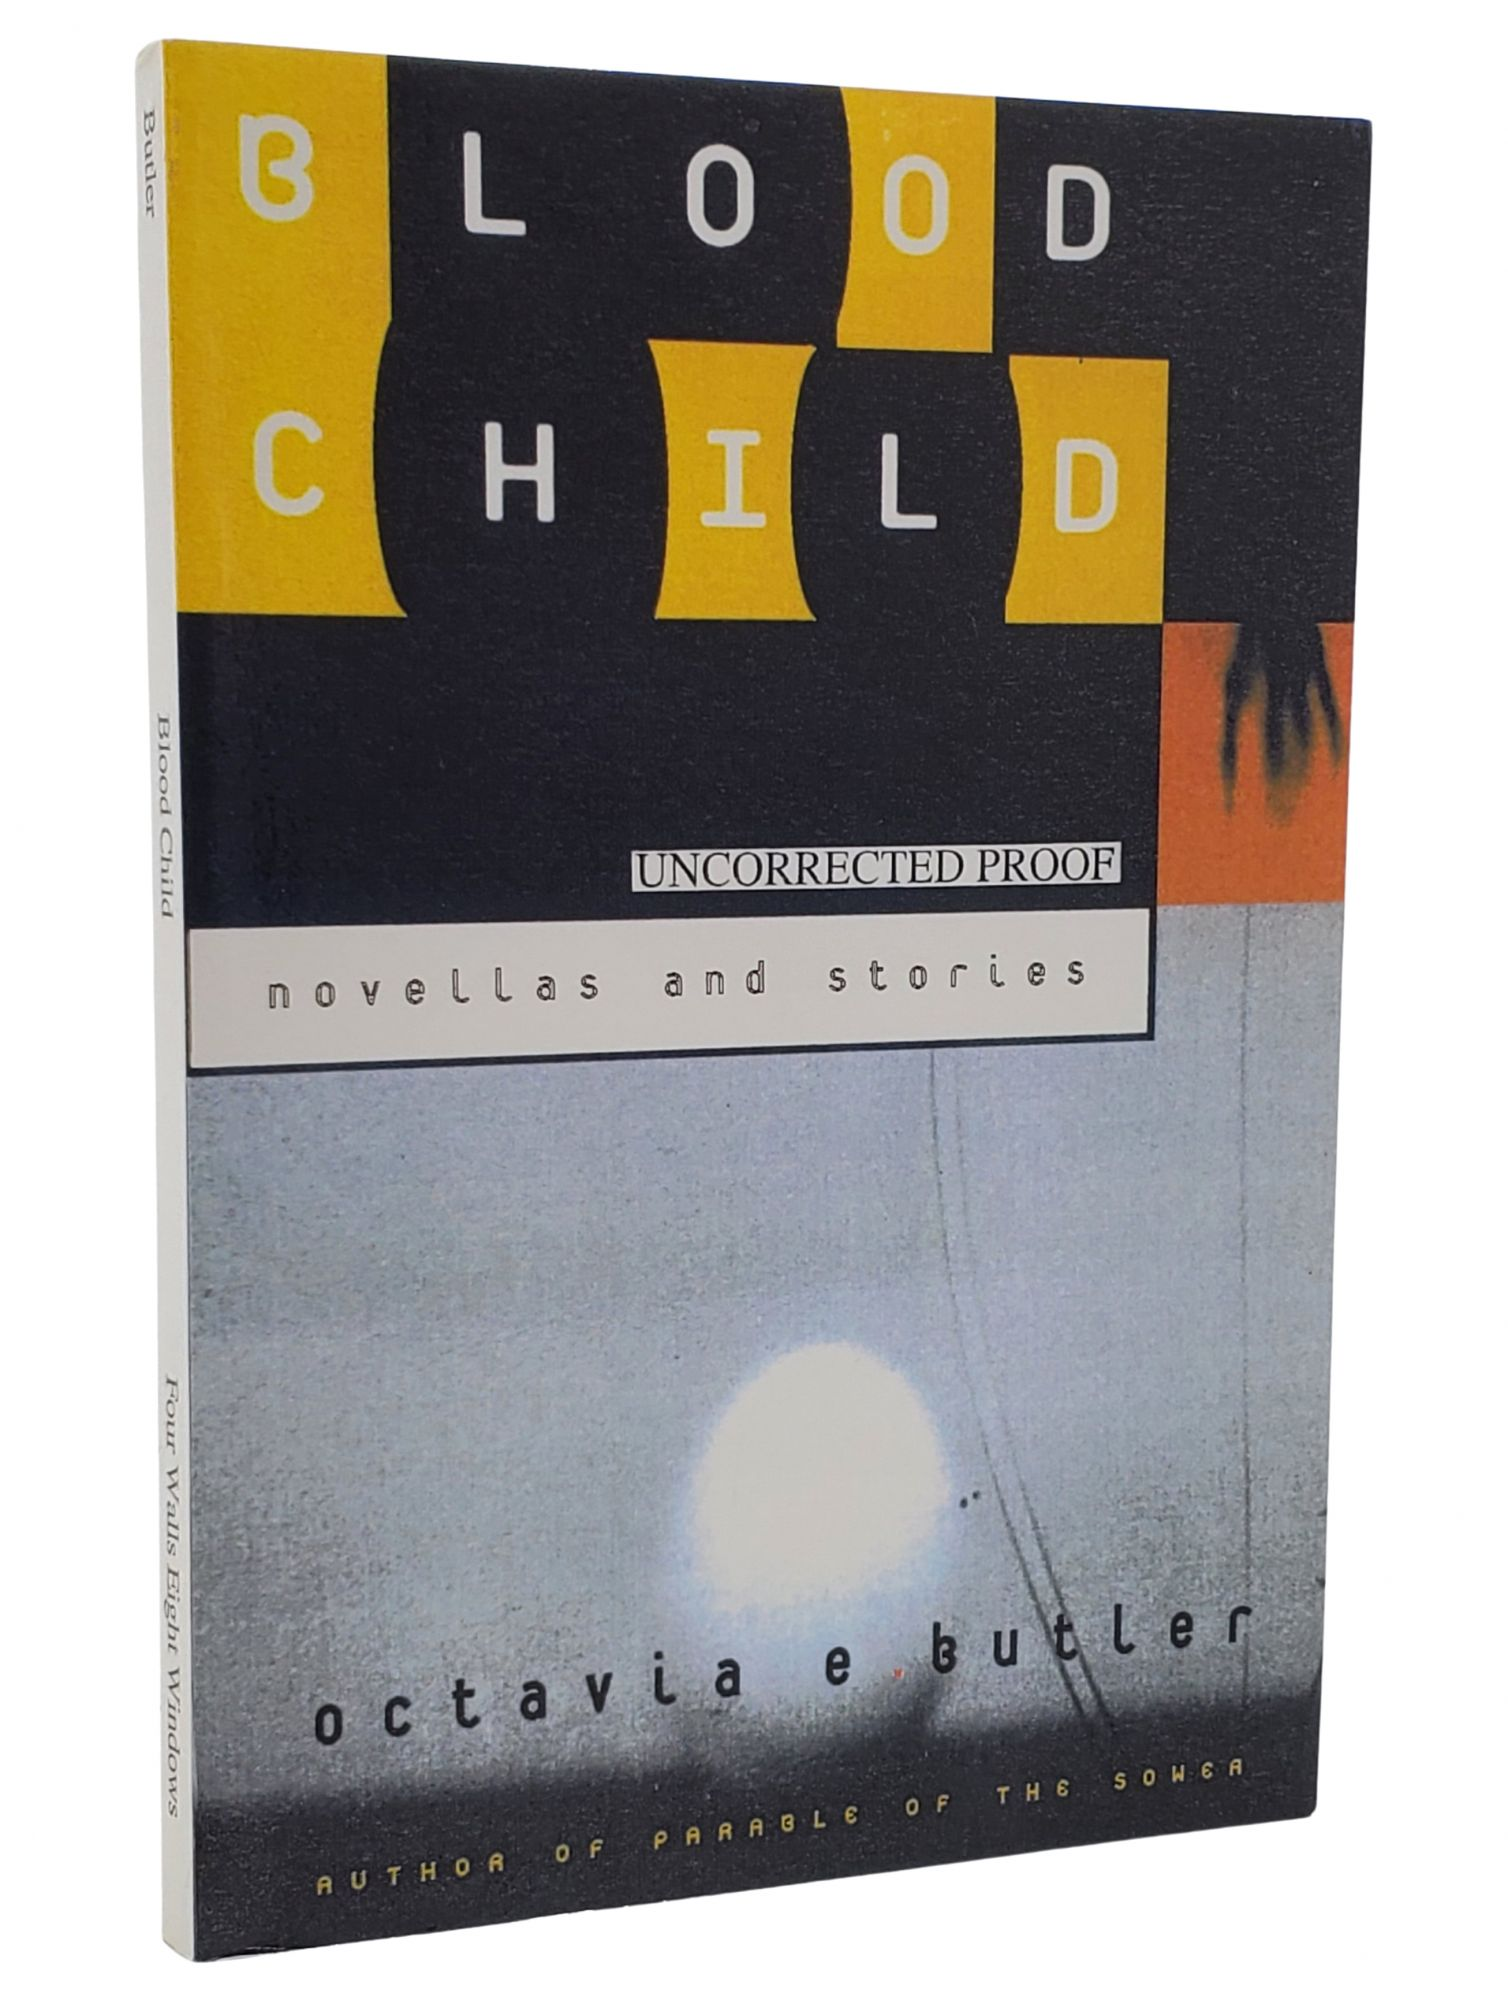 BLOODCHILD AND OTHER STORIES. Octavia E. Butler.